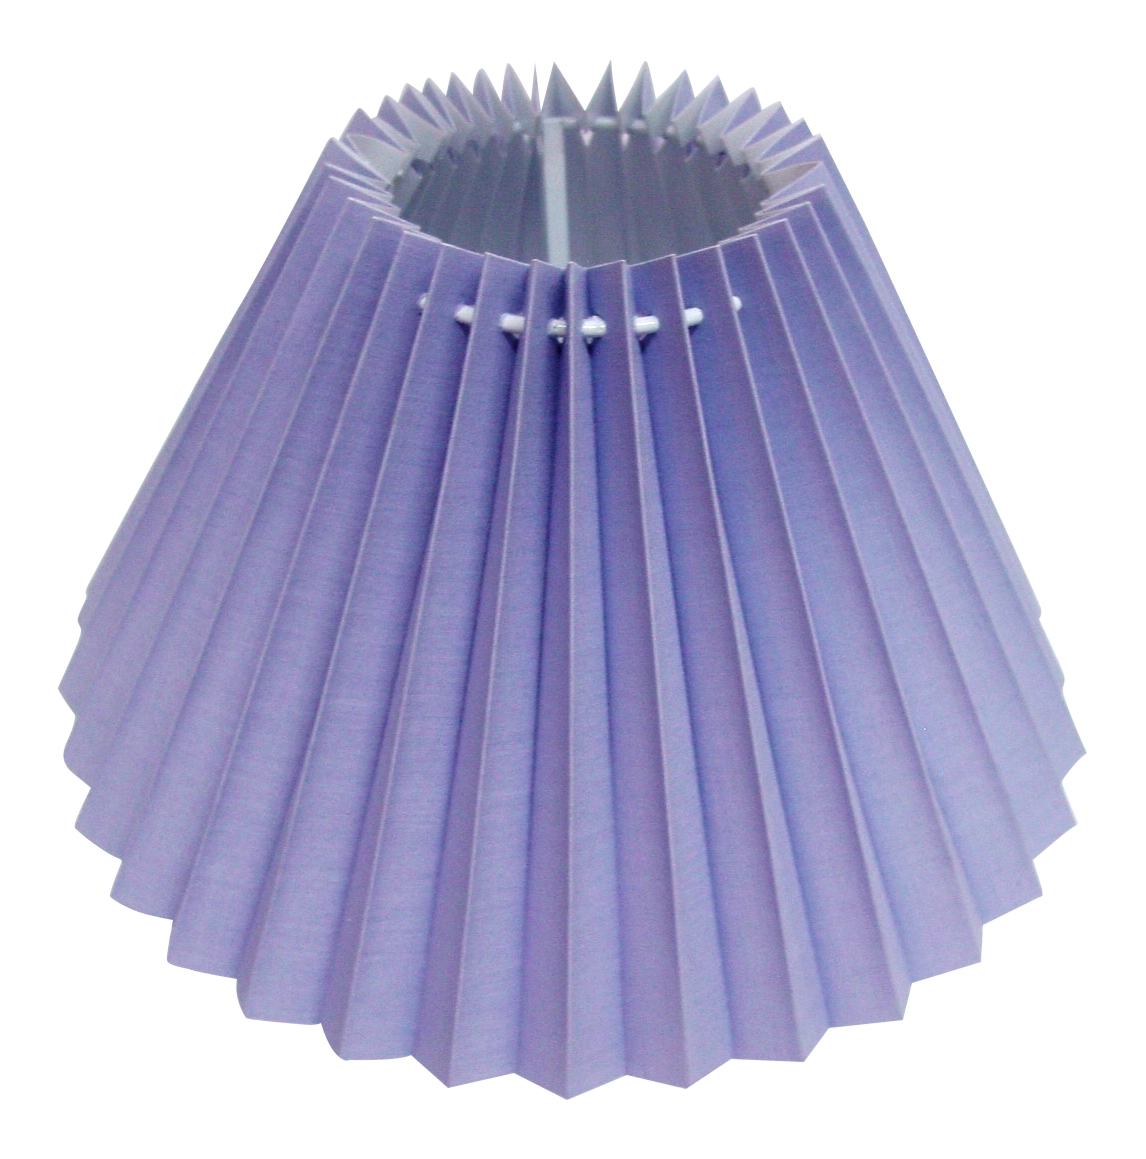 "Pleated Lamp Shades For Table Lamps: New 10"" Pleated Coolie Pendant Ceiling Table Lamp Shade"